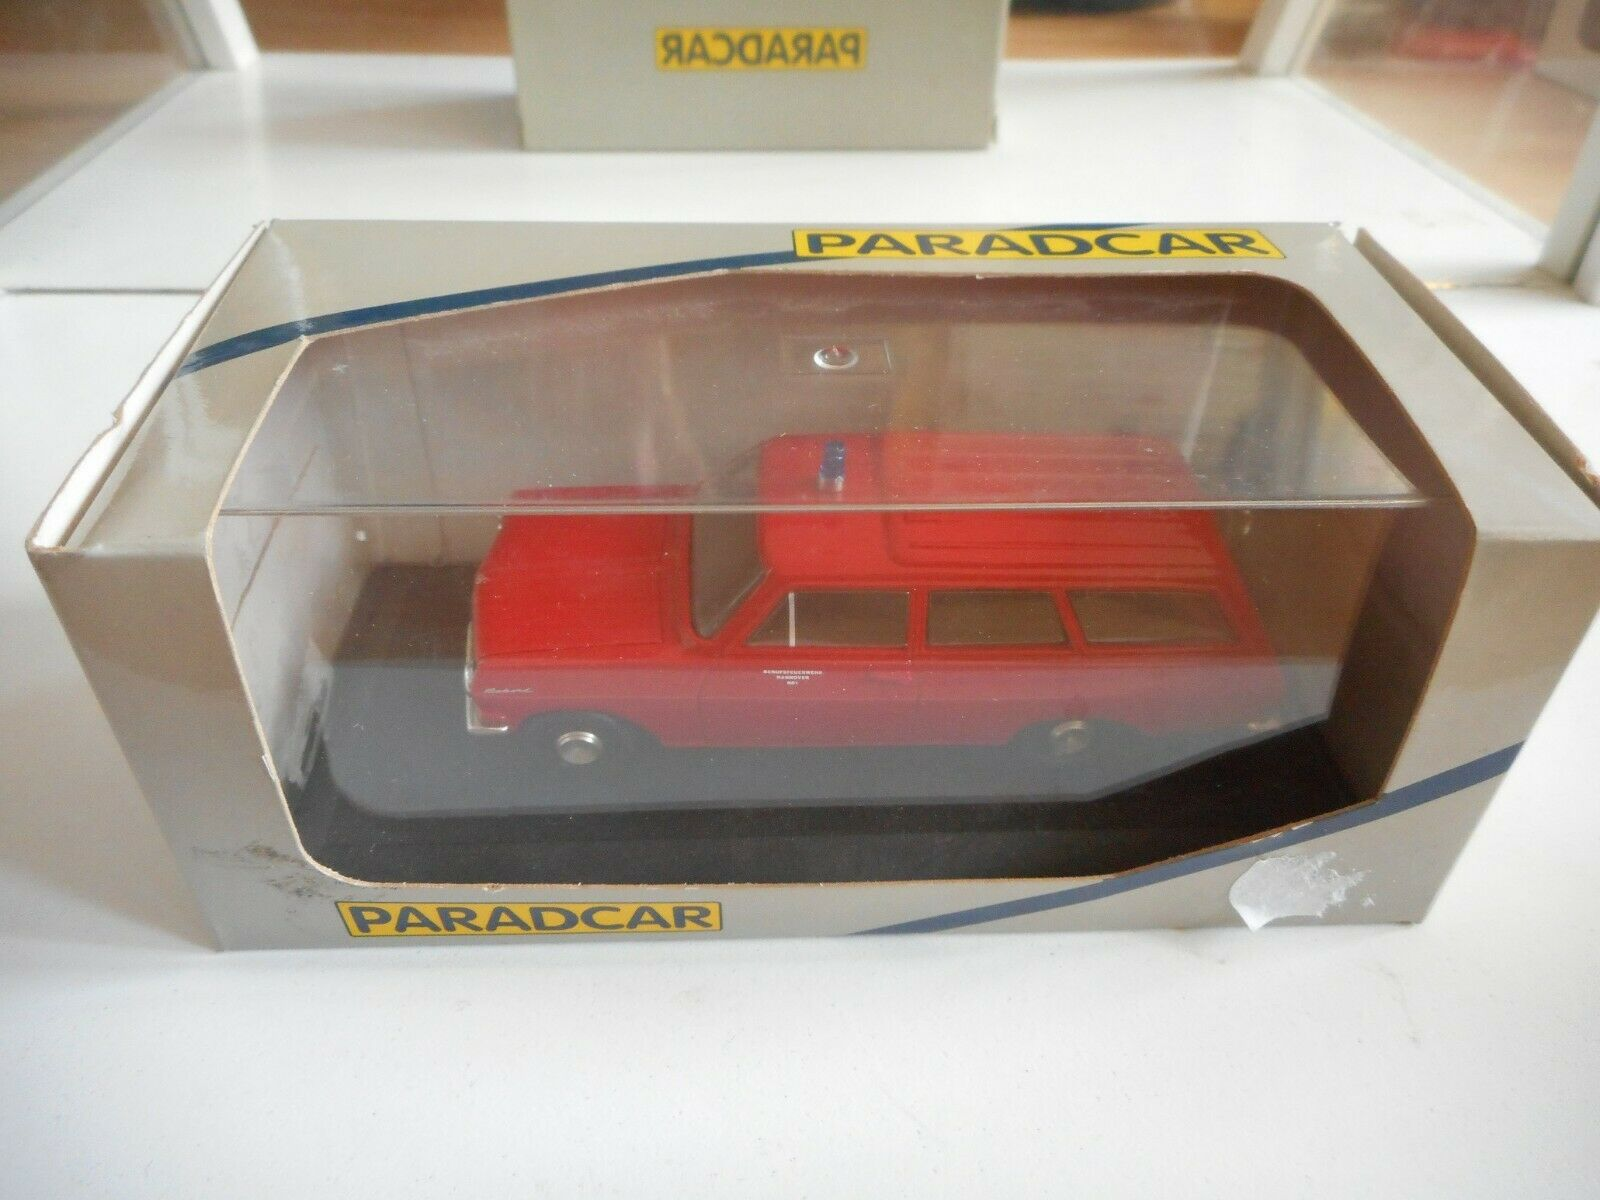 Paradcar Opel Rekord A Pomper   Feuerwhr in Red on 1 43 in Box